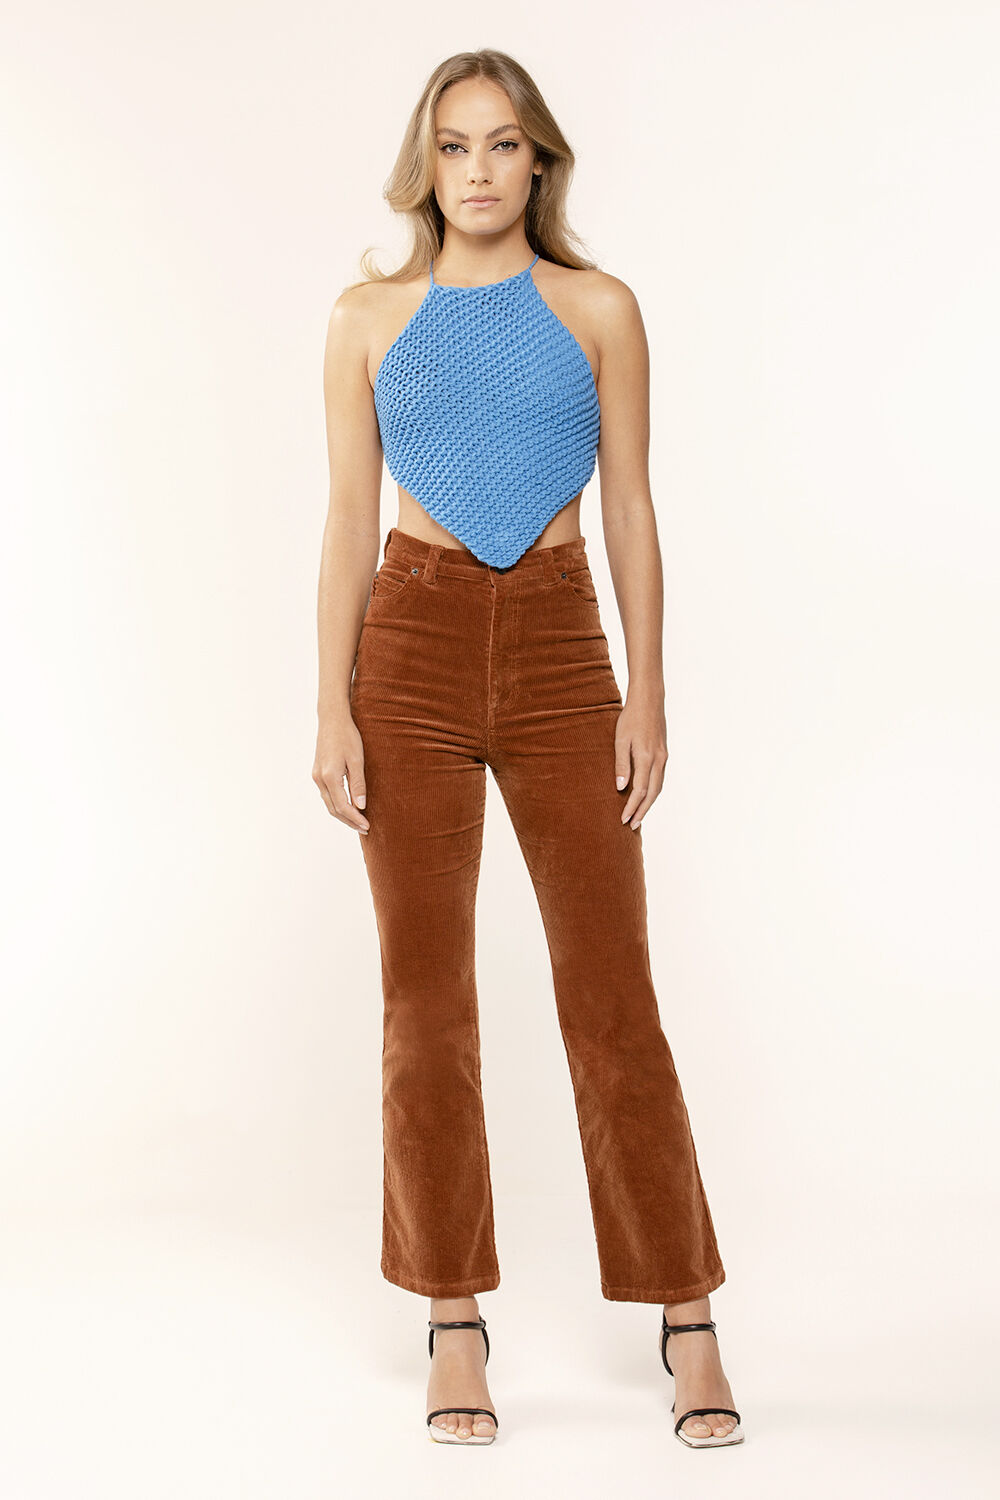 BOOTY CORD HIGH WAIST PANT in colour ROOT BEER